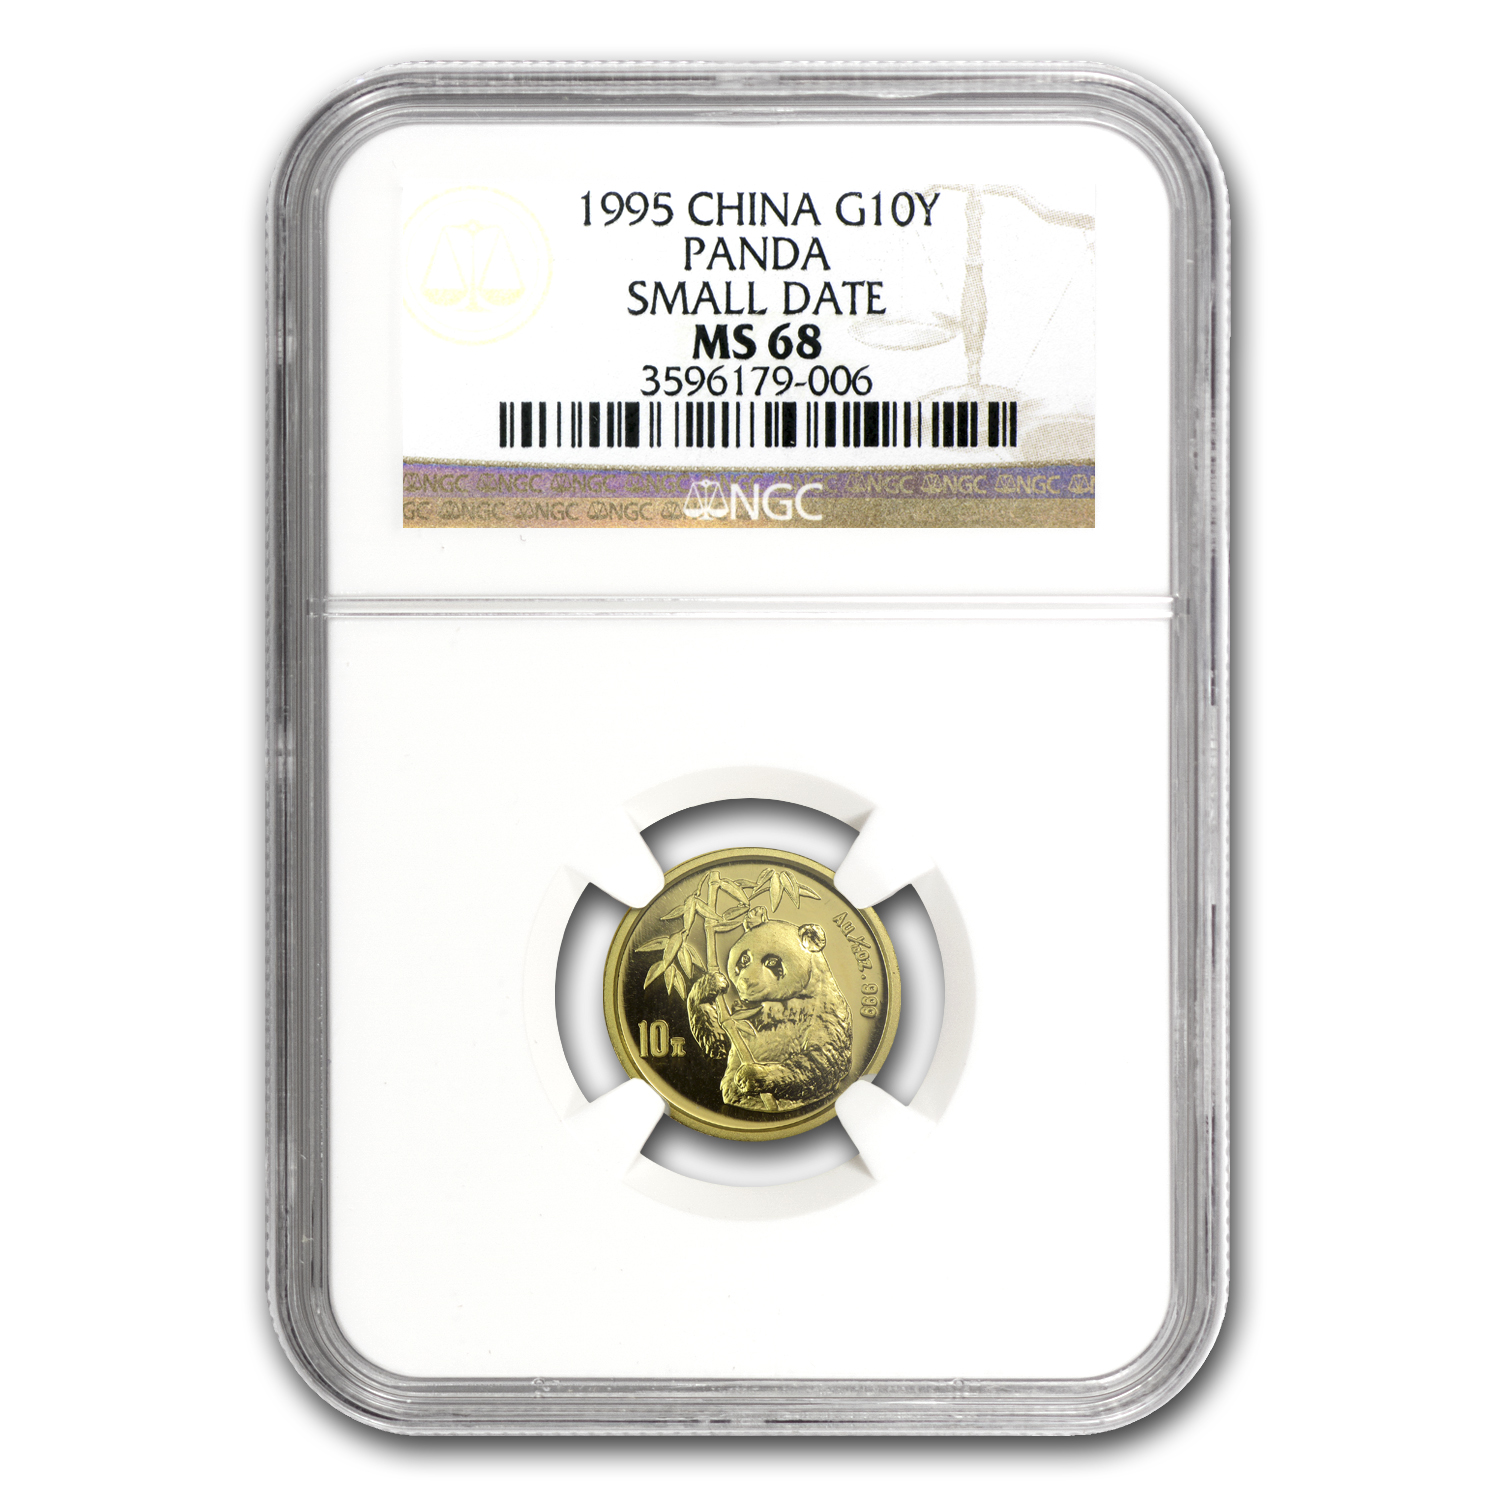 1995 China 1/10 oz Gold Panda Small Date MS-68 NGC